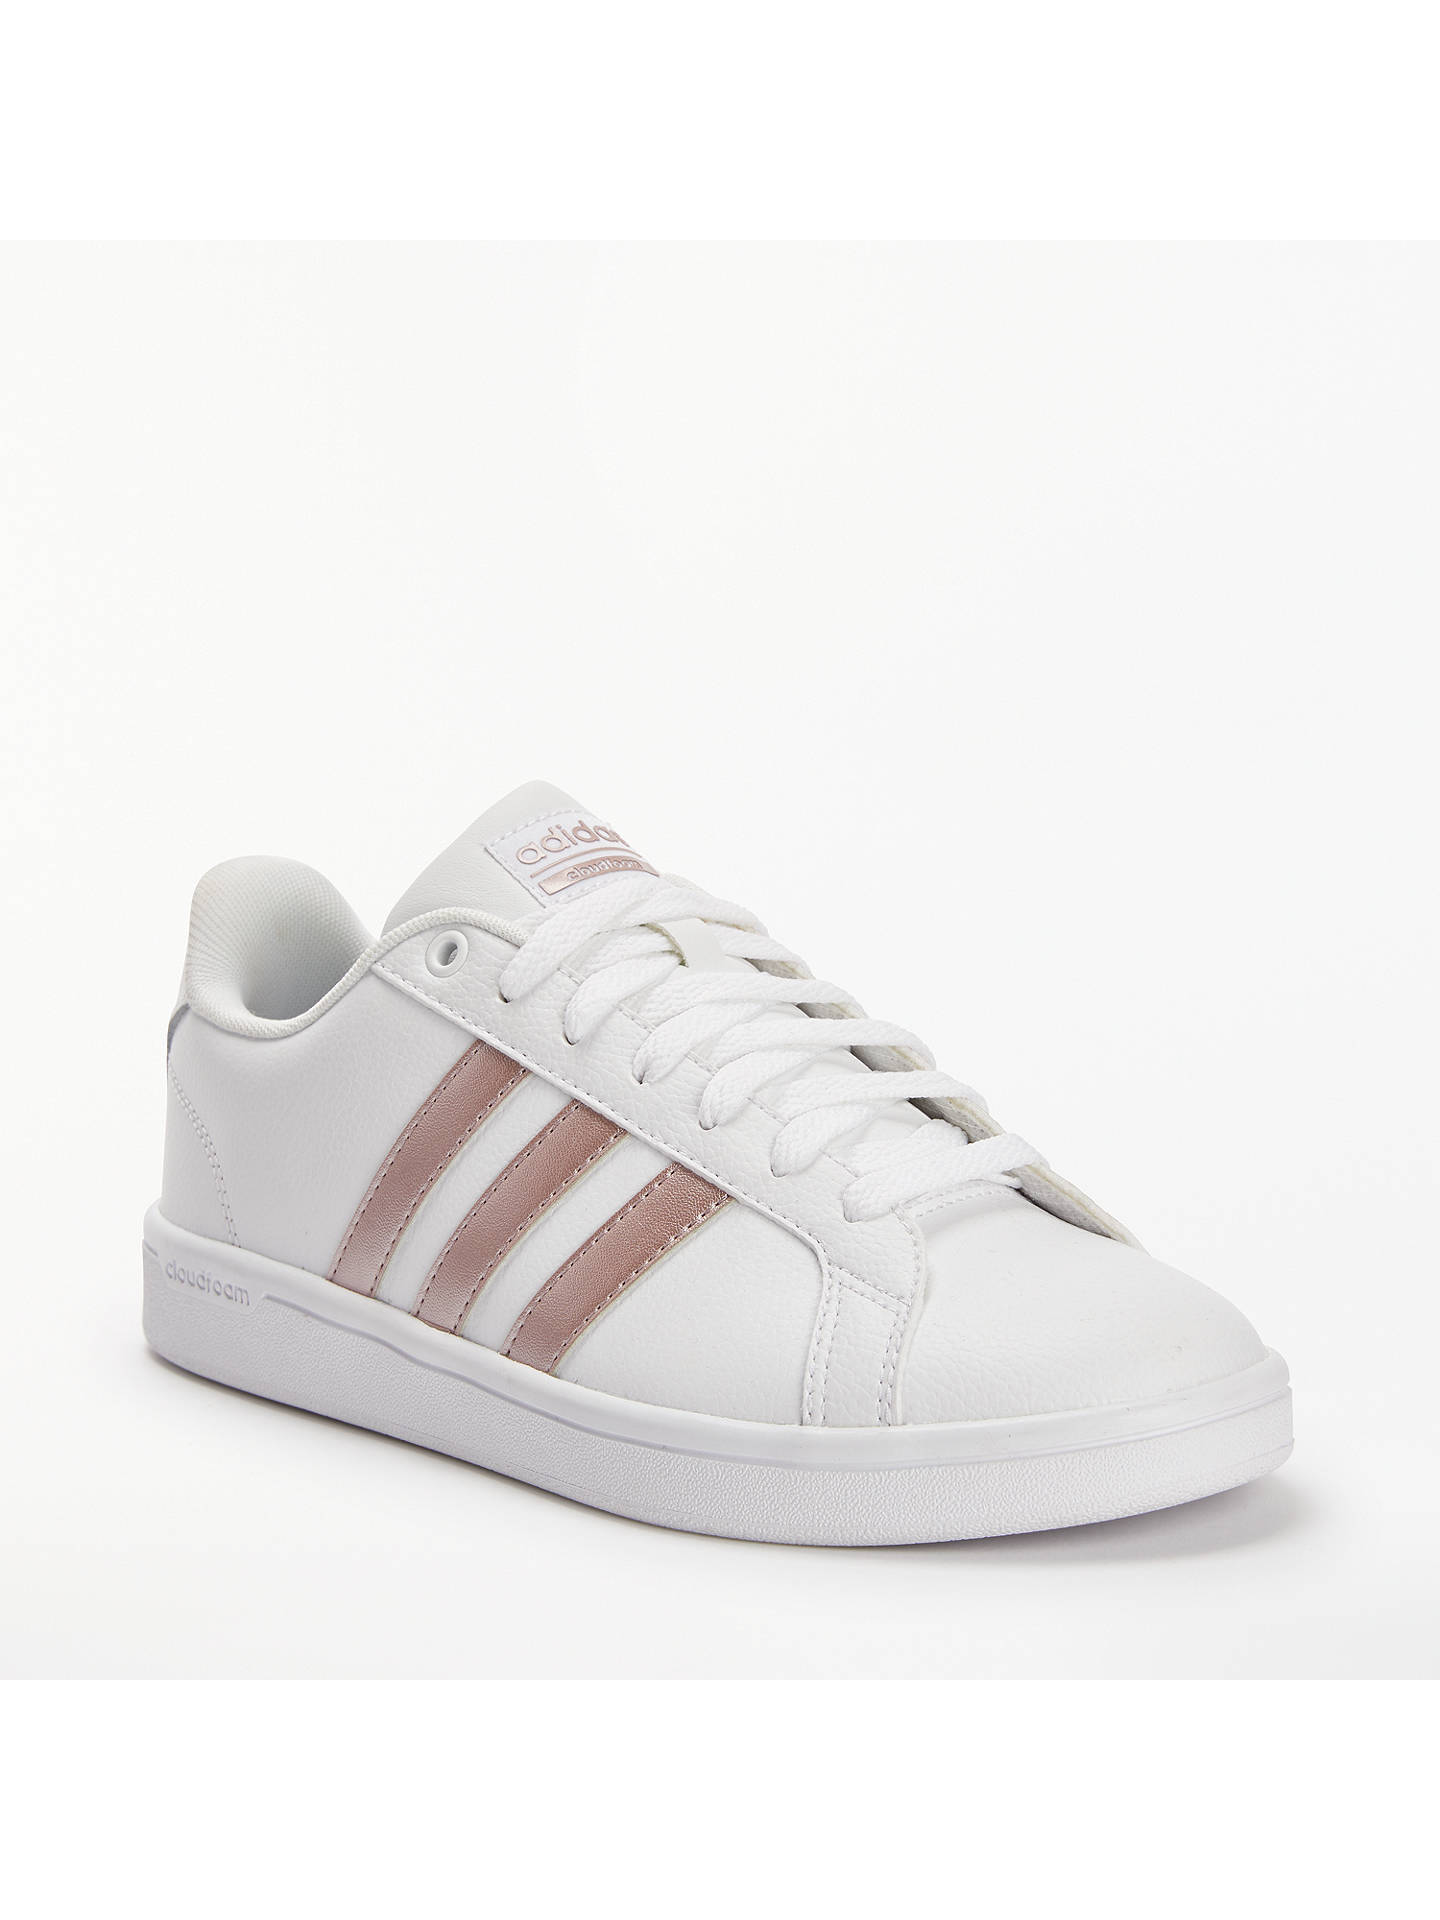 adidas Neo Cloudfoam Advantage Women s Trainers at John Lewis   Partners a11a48ebb